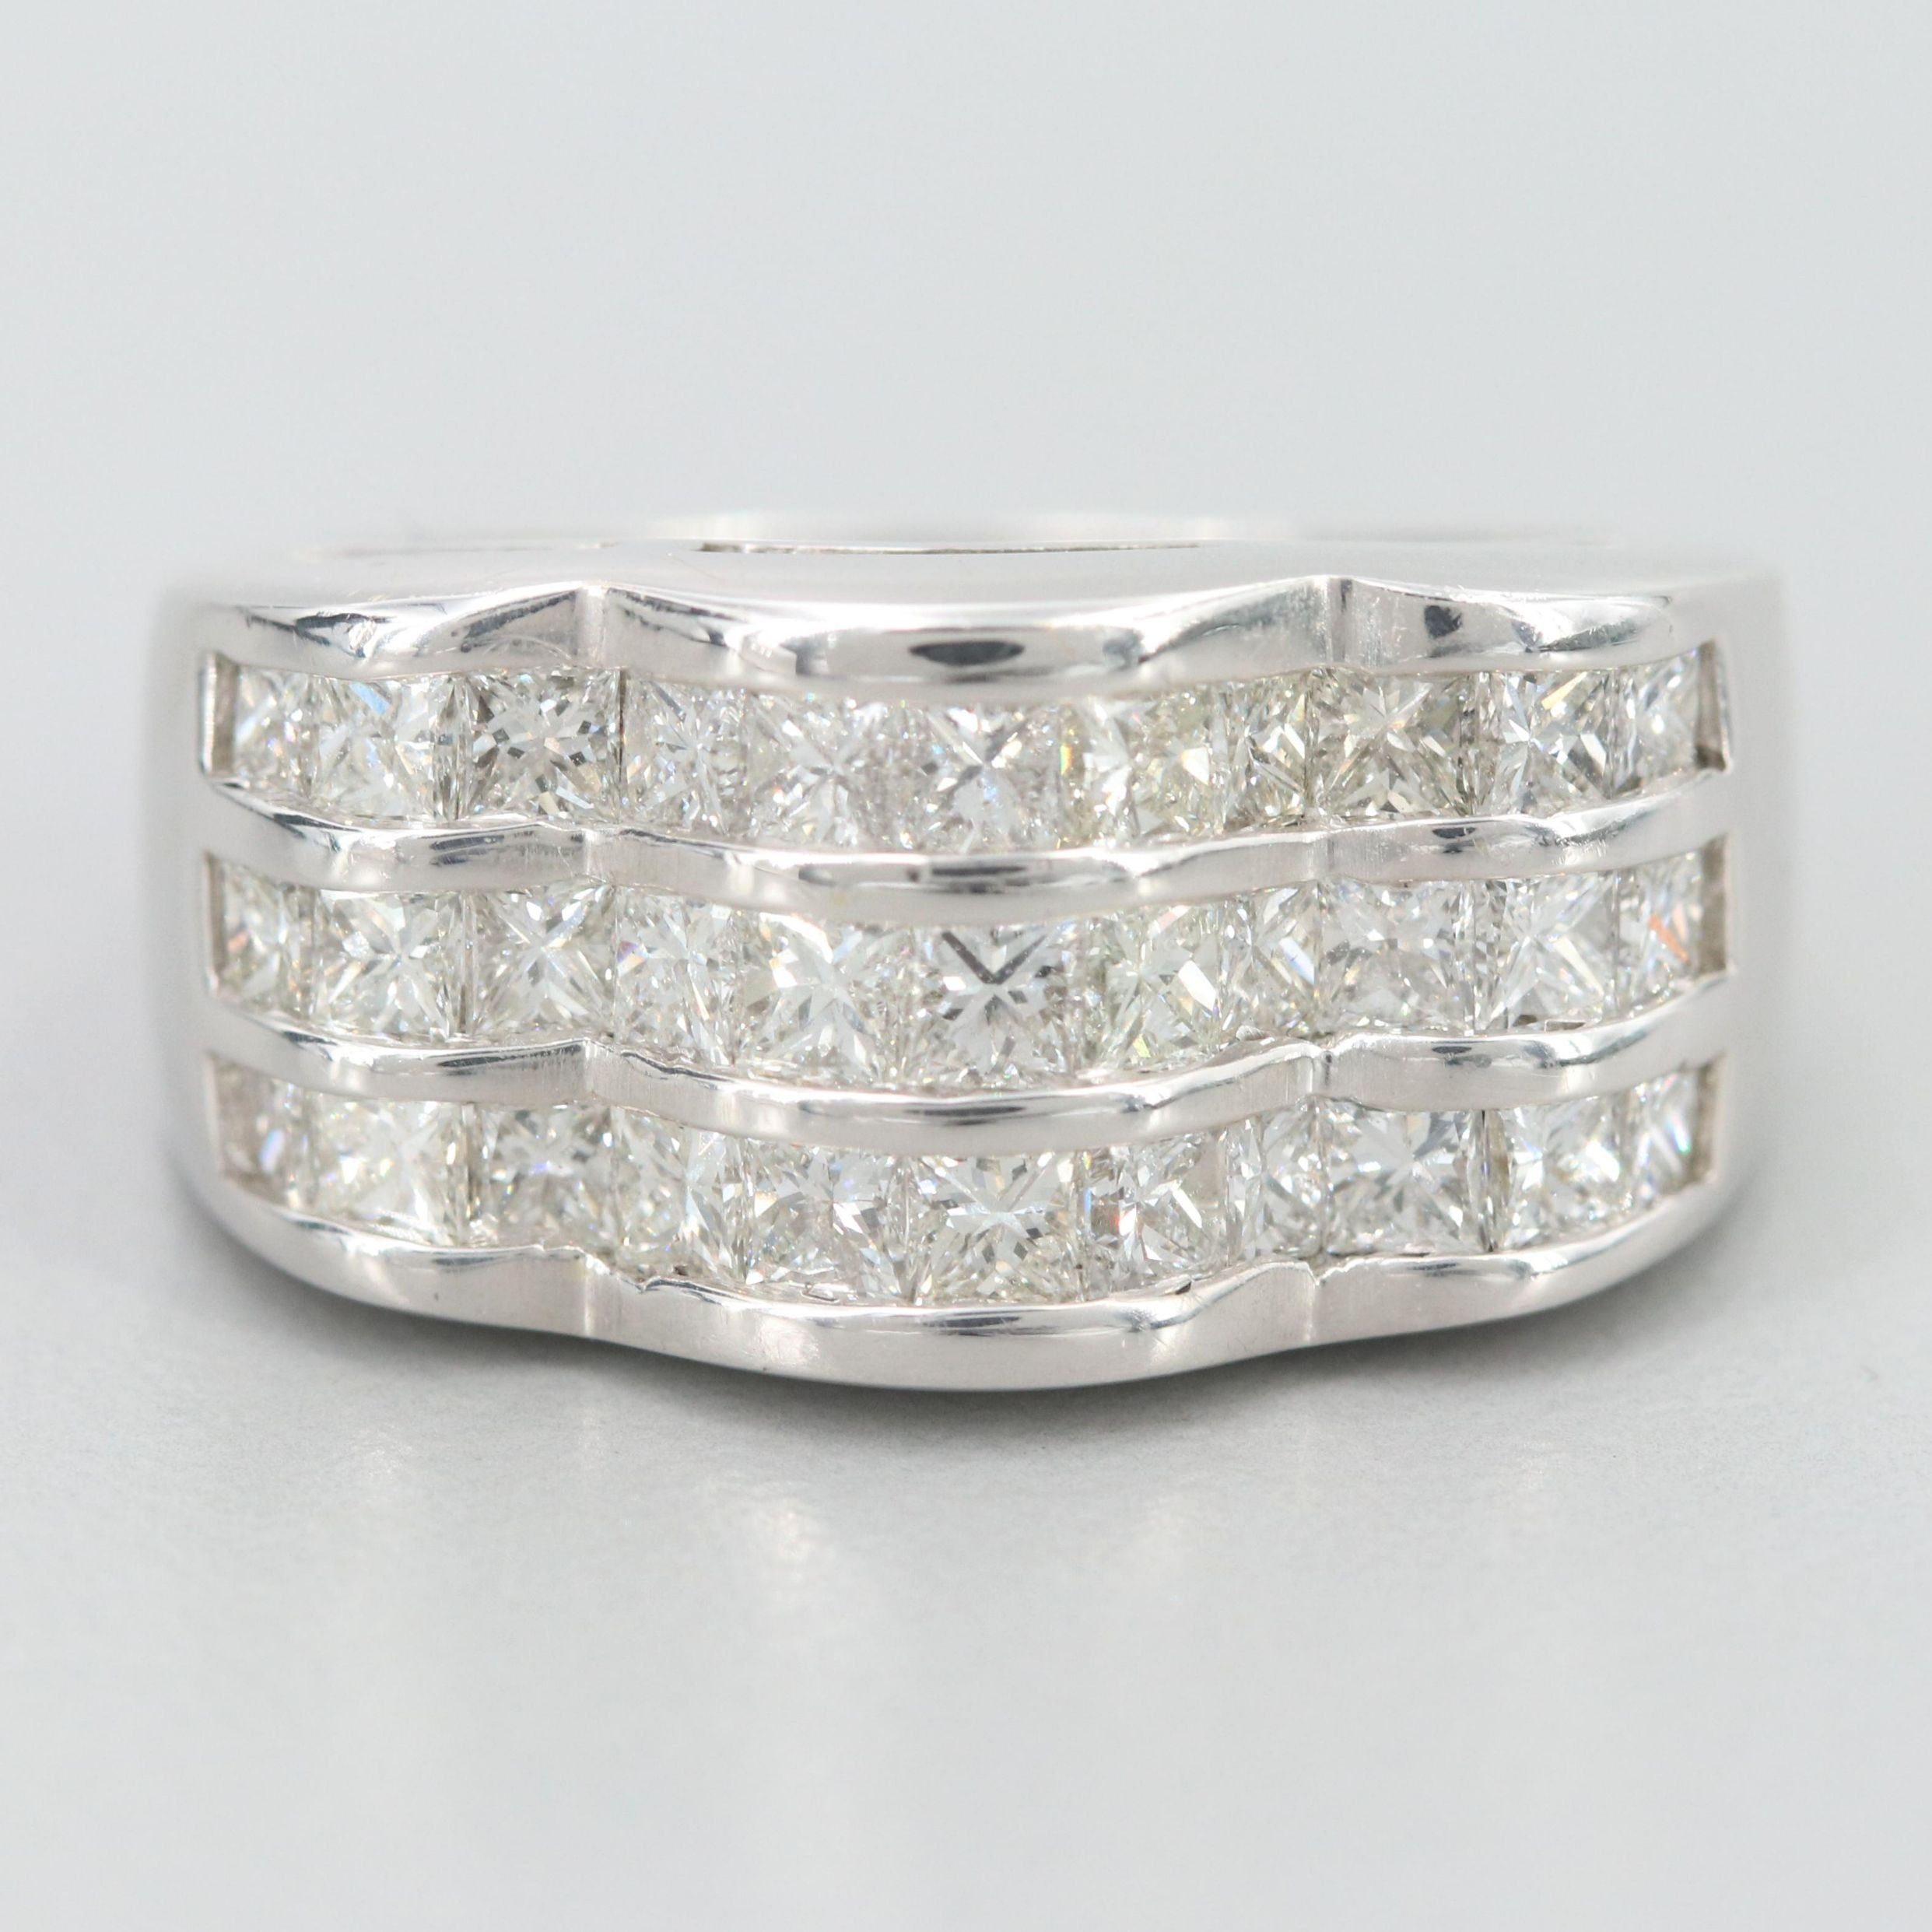 18K White Gold 2.05 CTW Diamond Ring